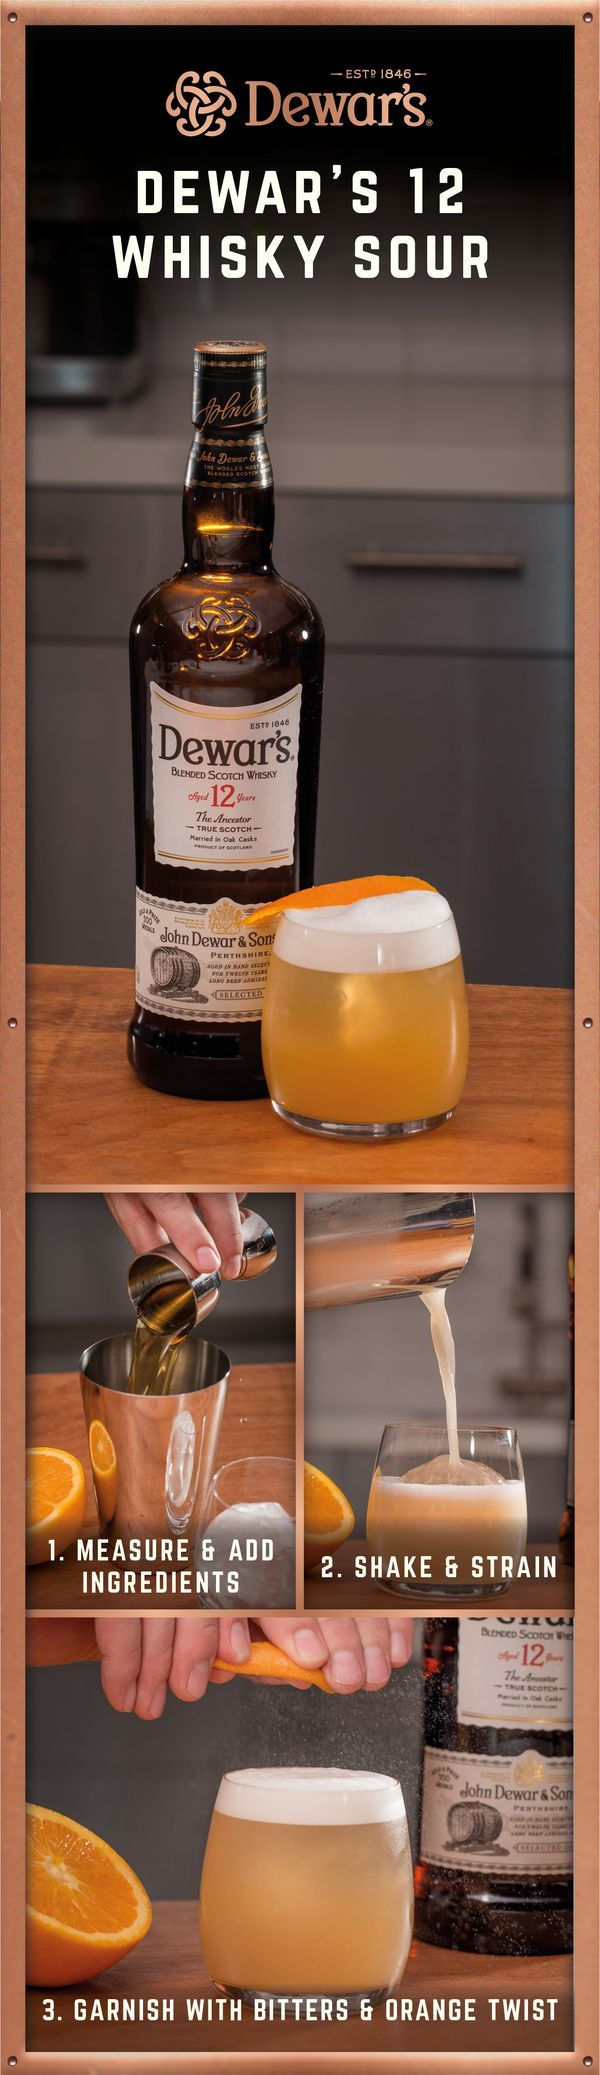 Ingredients: 1.5 oz DEWAR'S 12 Whisky | 1 egg white | .75 oz fresh lemon juice | .75 oz simple syrup (one part sugar, one part water) | Cherry or lemon wedge | Preparation: Pour the egg white into a cocktail shaker. Add ice. Shake briefly to aerate the wh